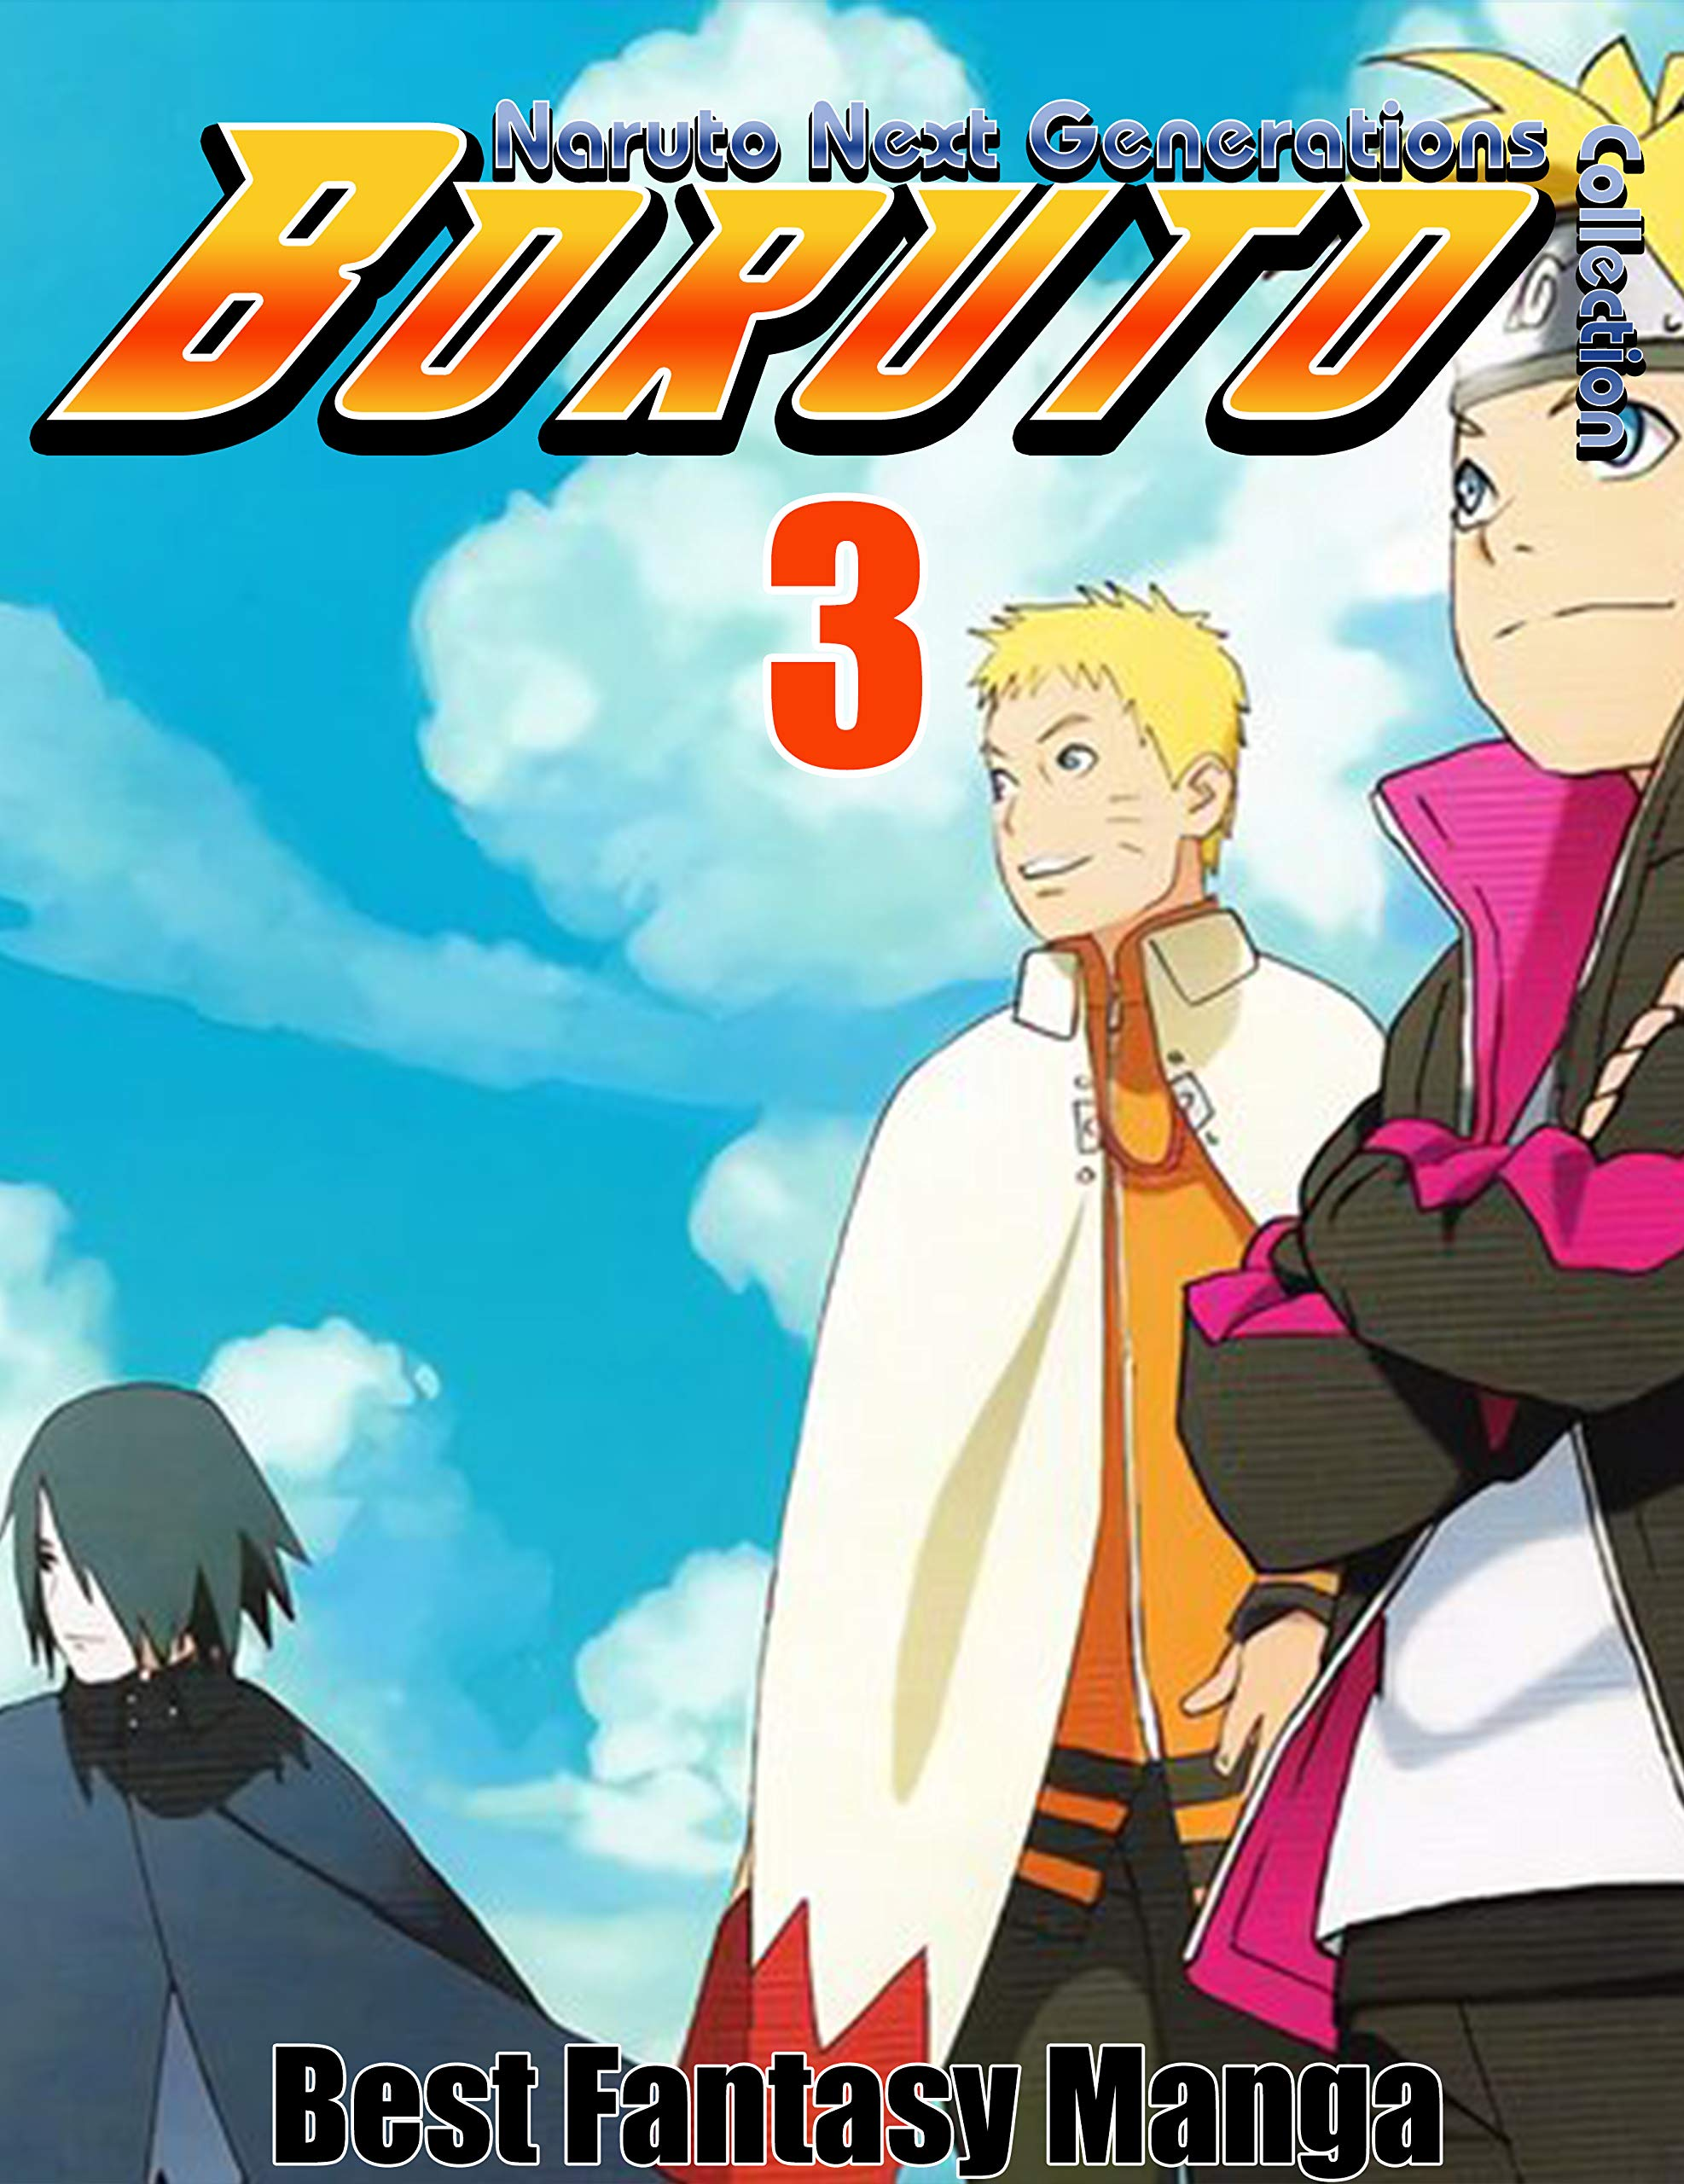 Best Fantasy Manga Boruto Naruto Next Generations Collection: Full Collection Boruto Naruto Next Generations Vol 3